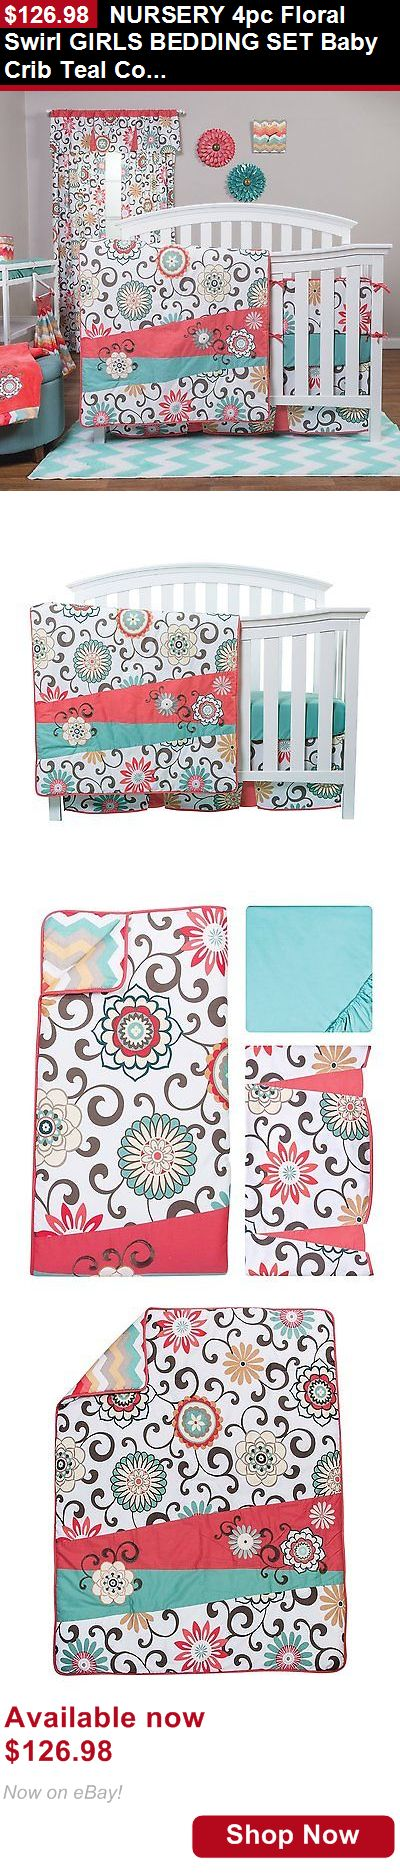 Nursery Bedding Sets: Nursery 4Pc Floral Swirl Girls Bedding Set Baby Crib Teal Coral Chevron Quilt BUY IT NOW ONLY: $126.98